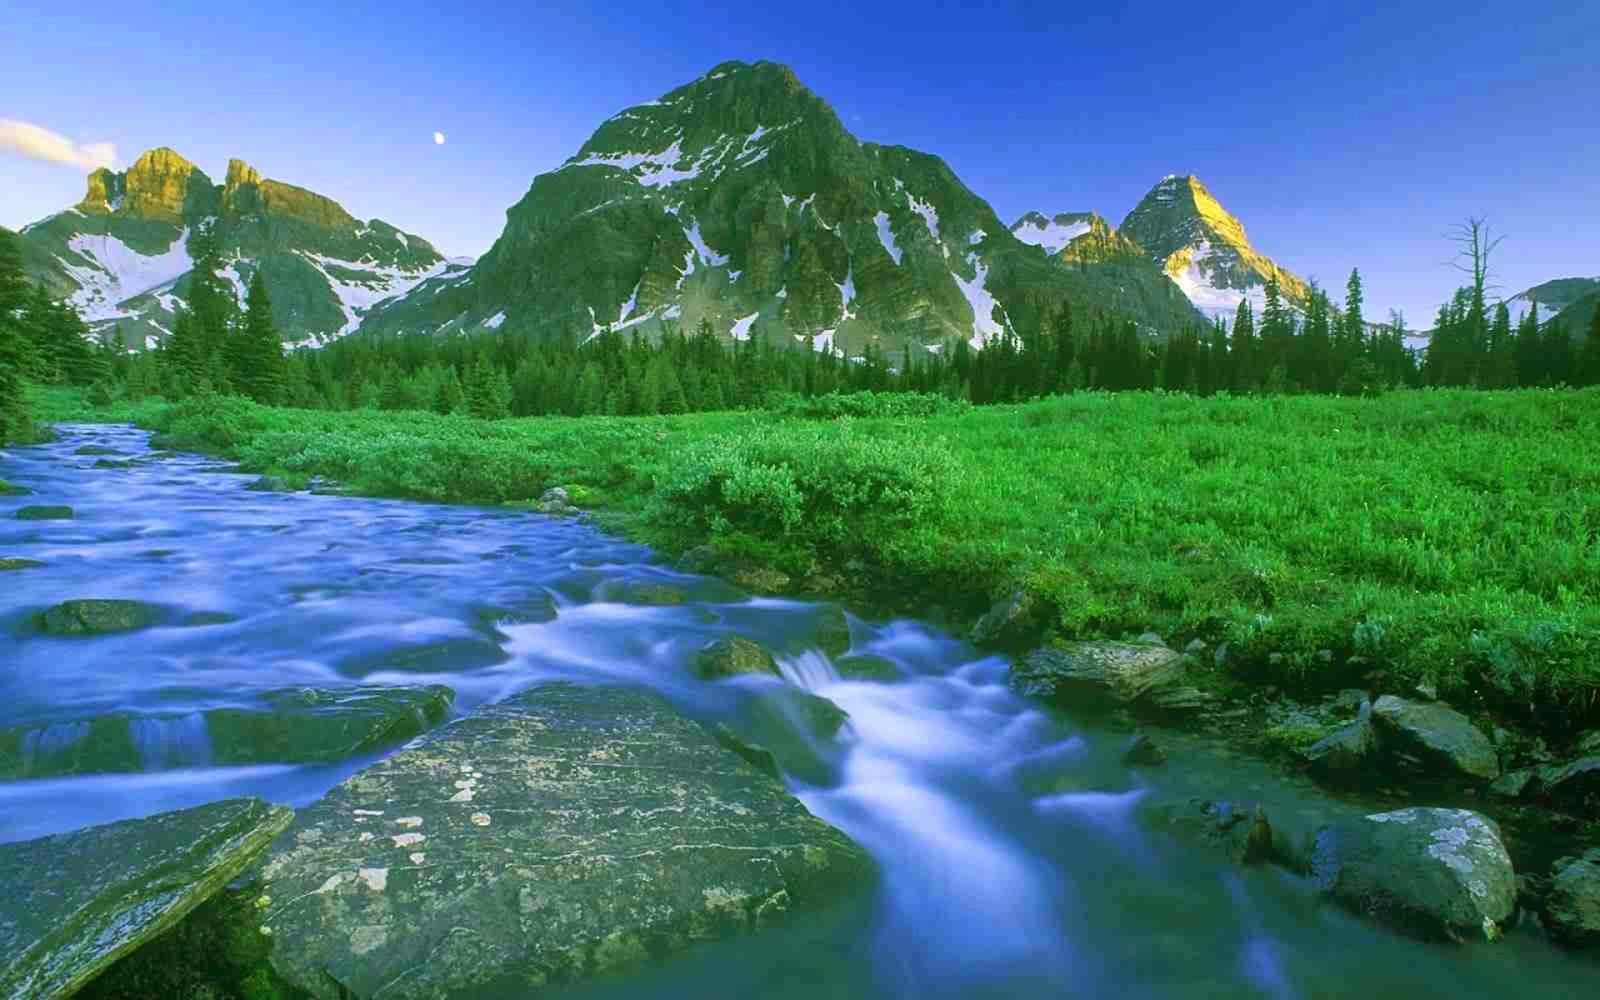 Waterflow Green Nature Widescreen HD Desktop Backgrounds Images Wallpapers